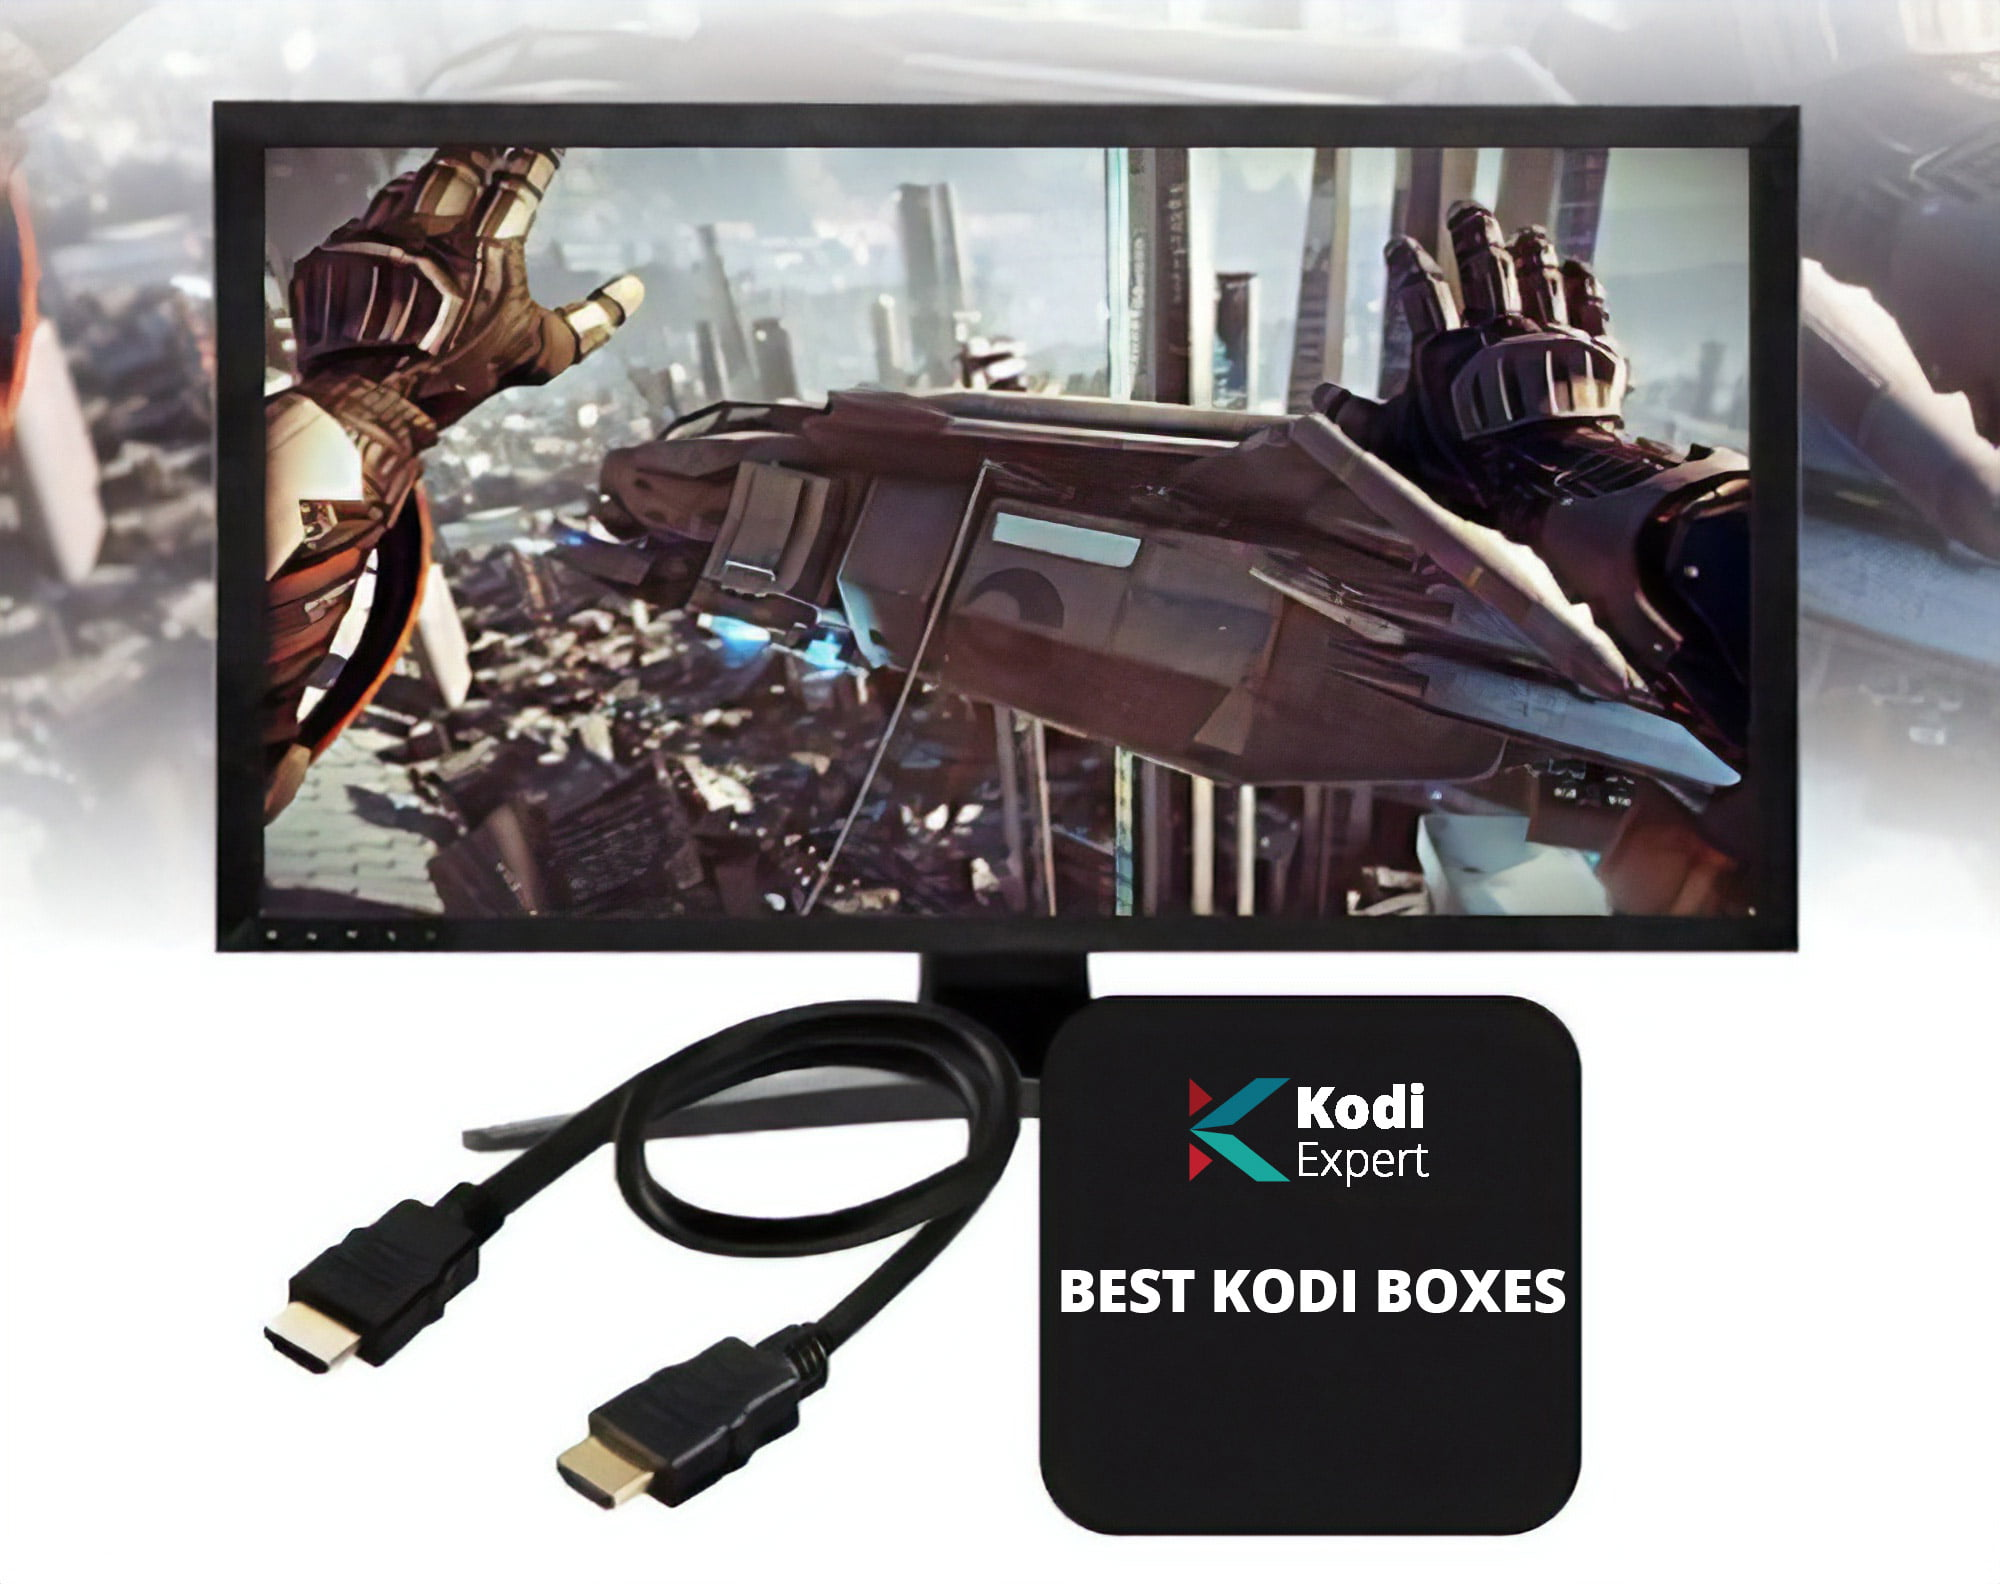 best kodi boxes explained